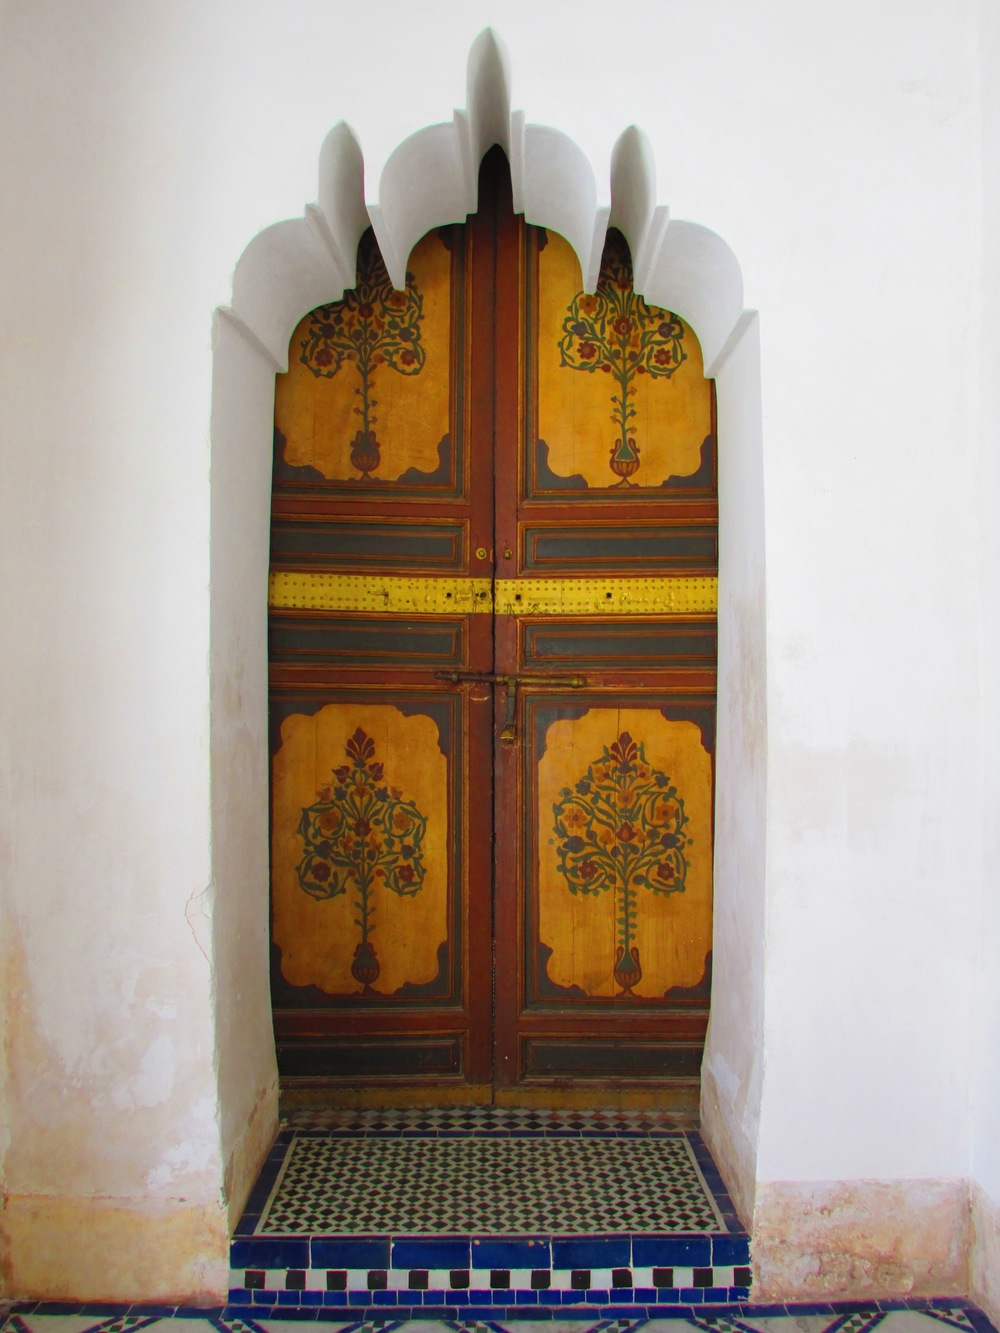 One of the many elaborate doorways at the Bahia Palace